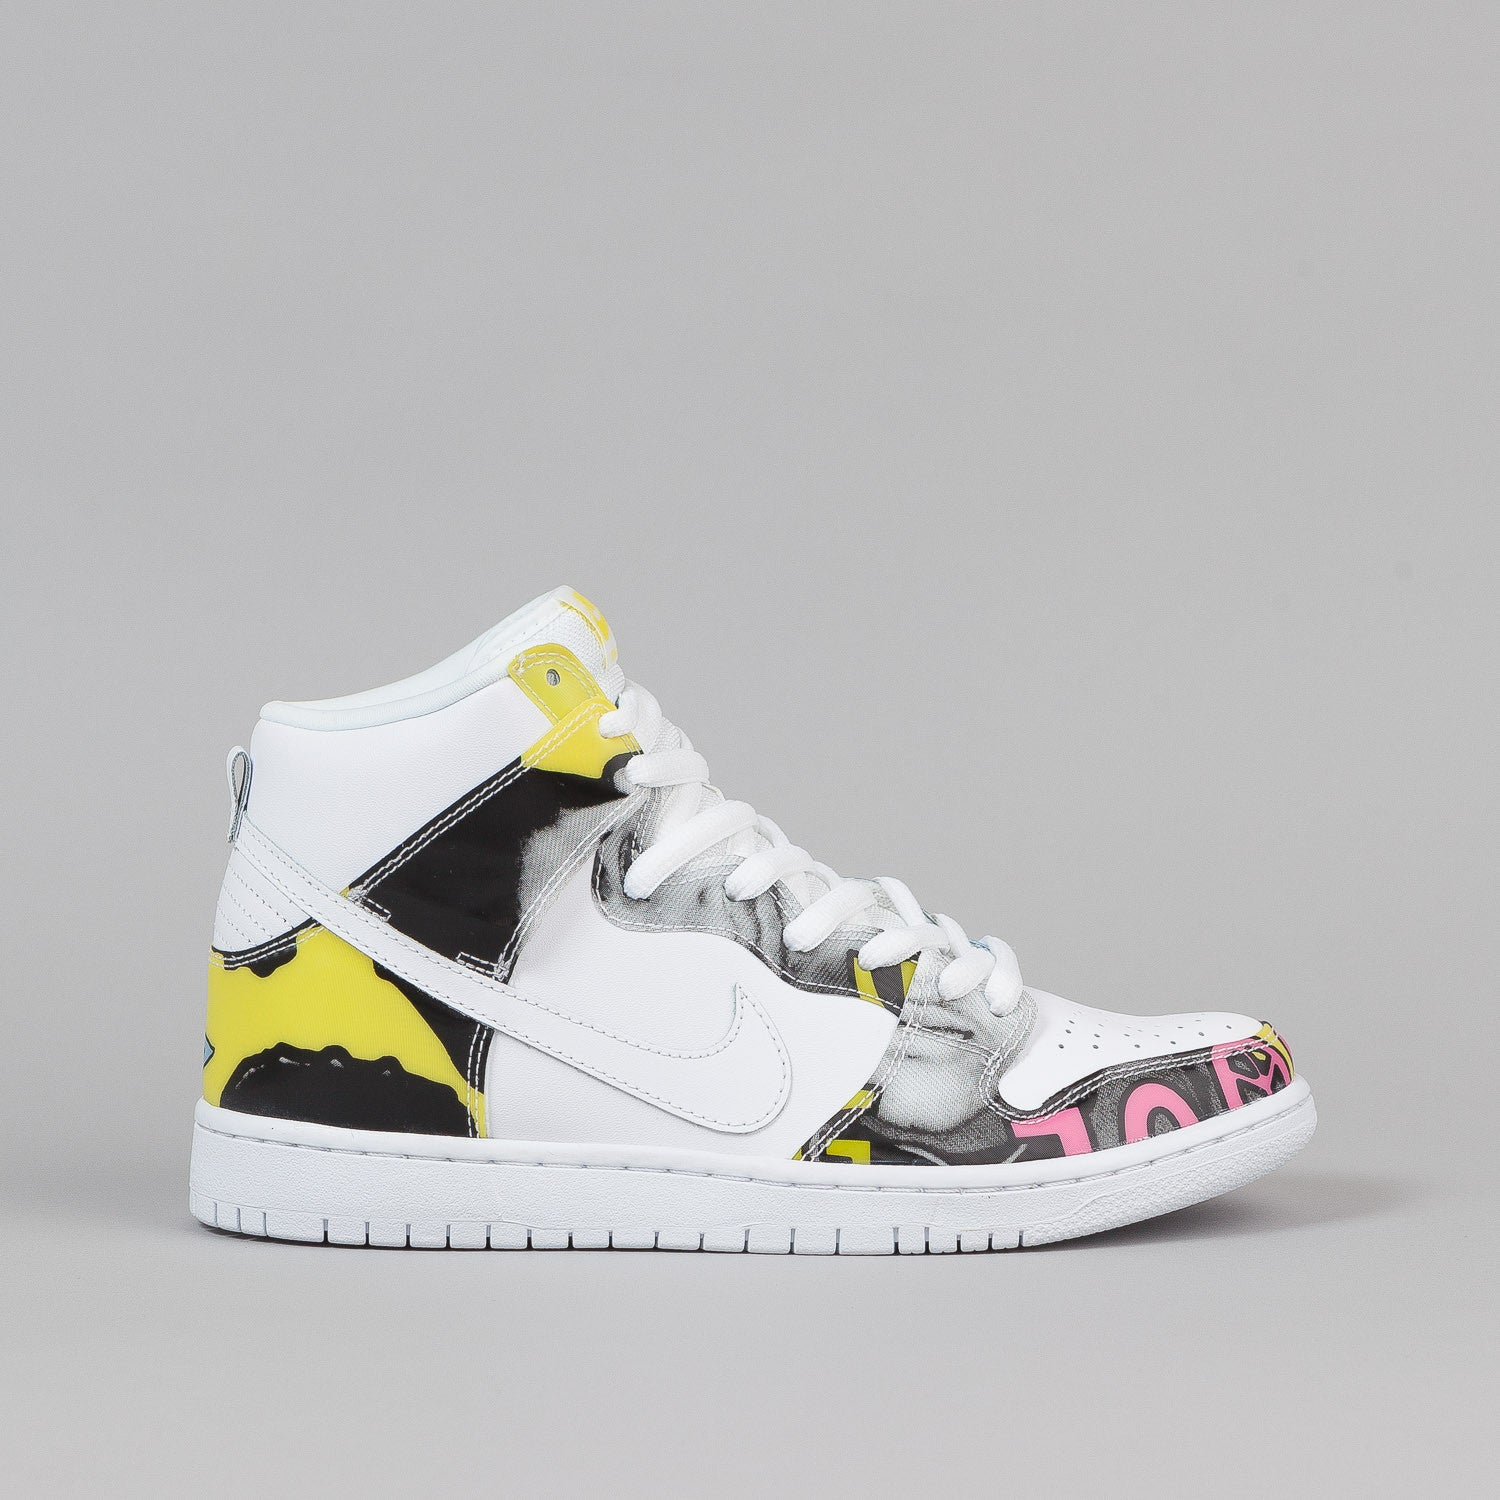 Nike SB Dunk High Premium Quickstrike Shoes